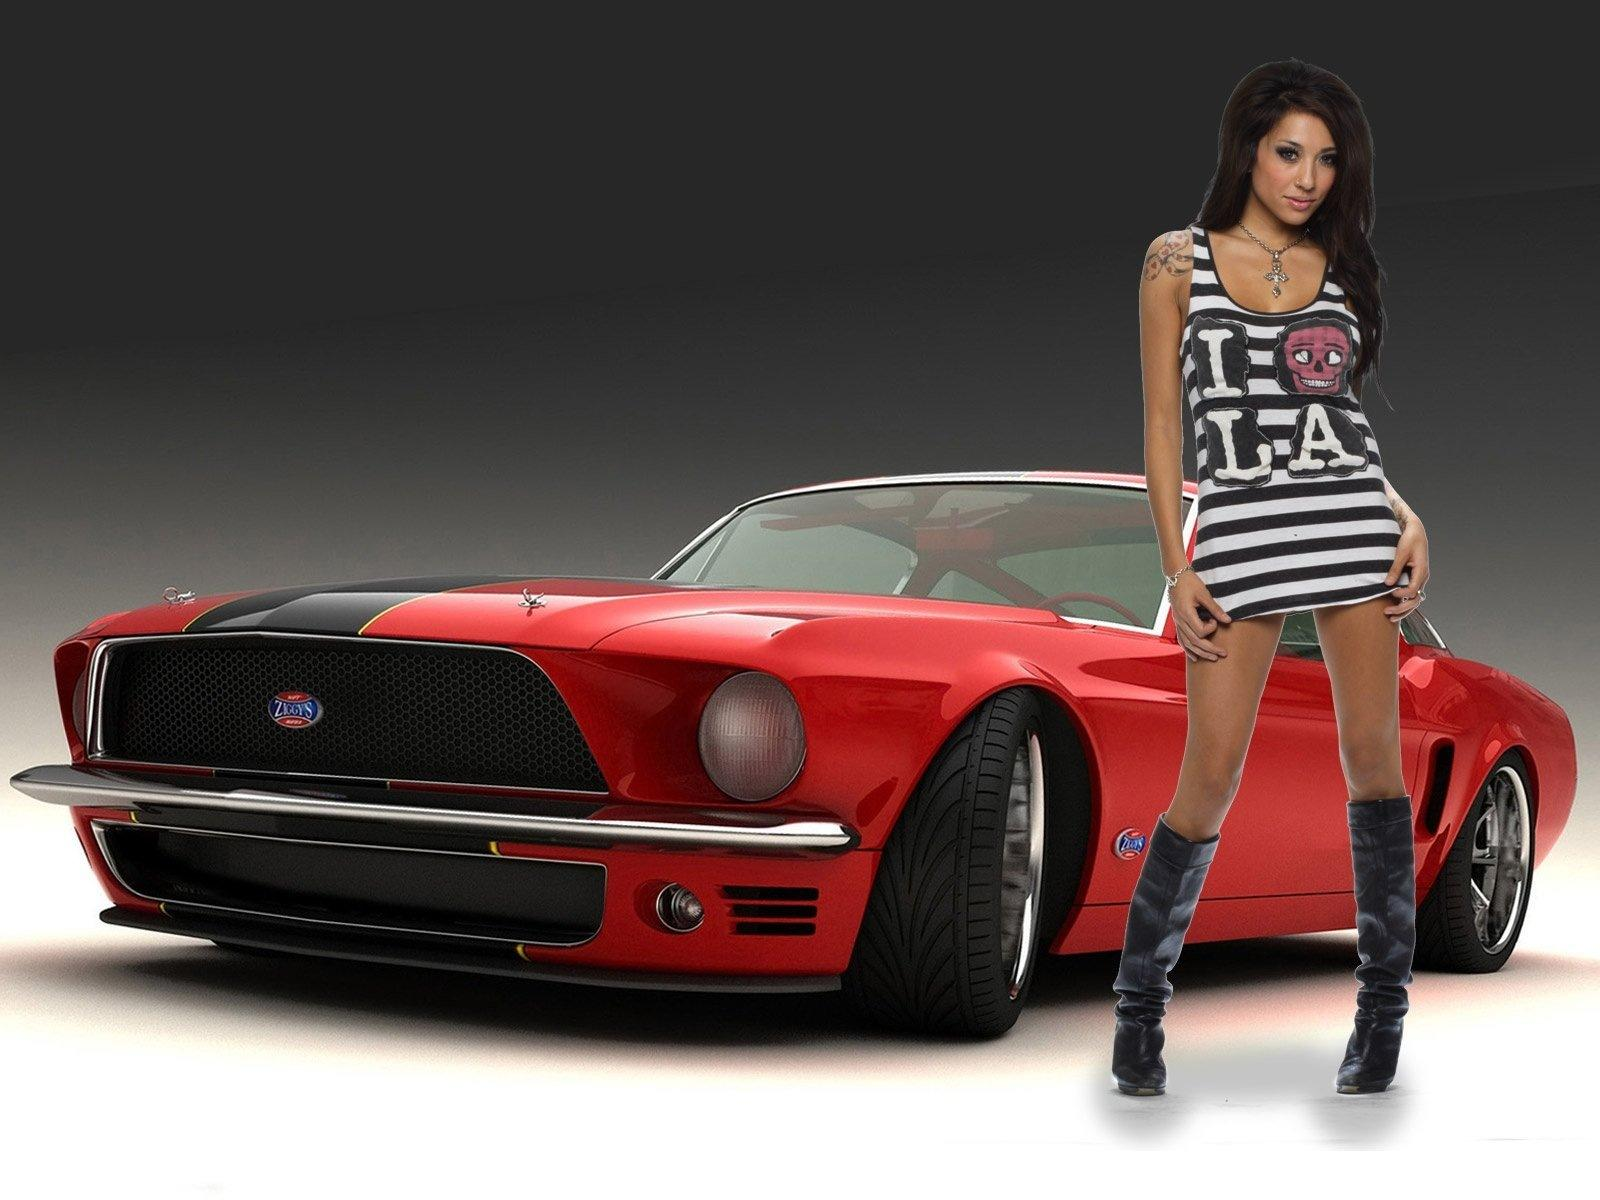 Download HQ mustang Girls Cars Wallpaper Num 122 1600 x 1200 1600x1200